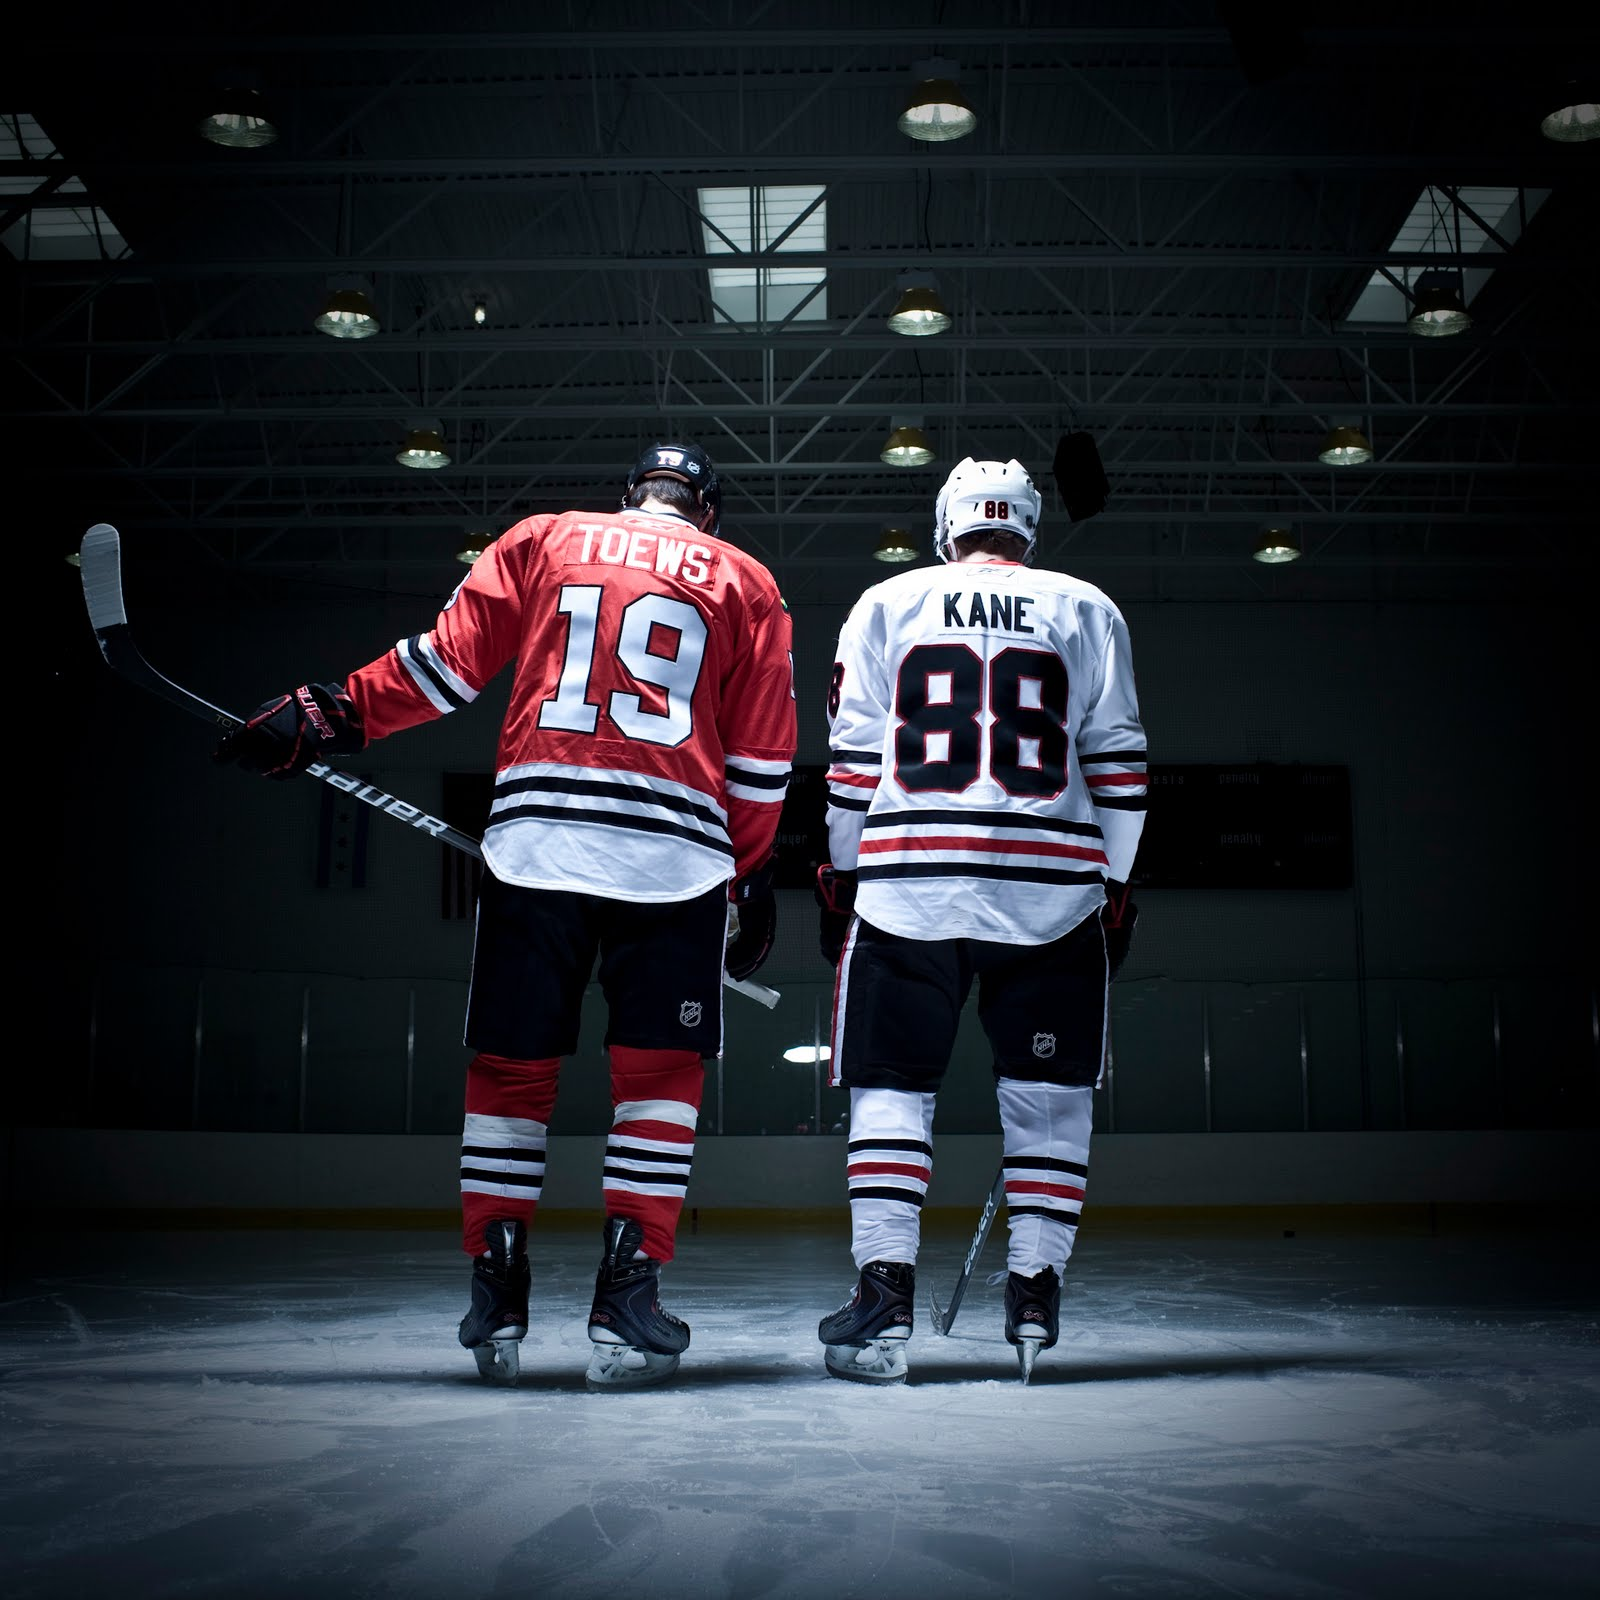 Chicago Blackhawks Wallpaper Iphone 6 Patrick Molnar Chicago Toews And Kane For Bauer Hockey